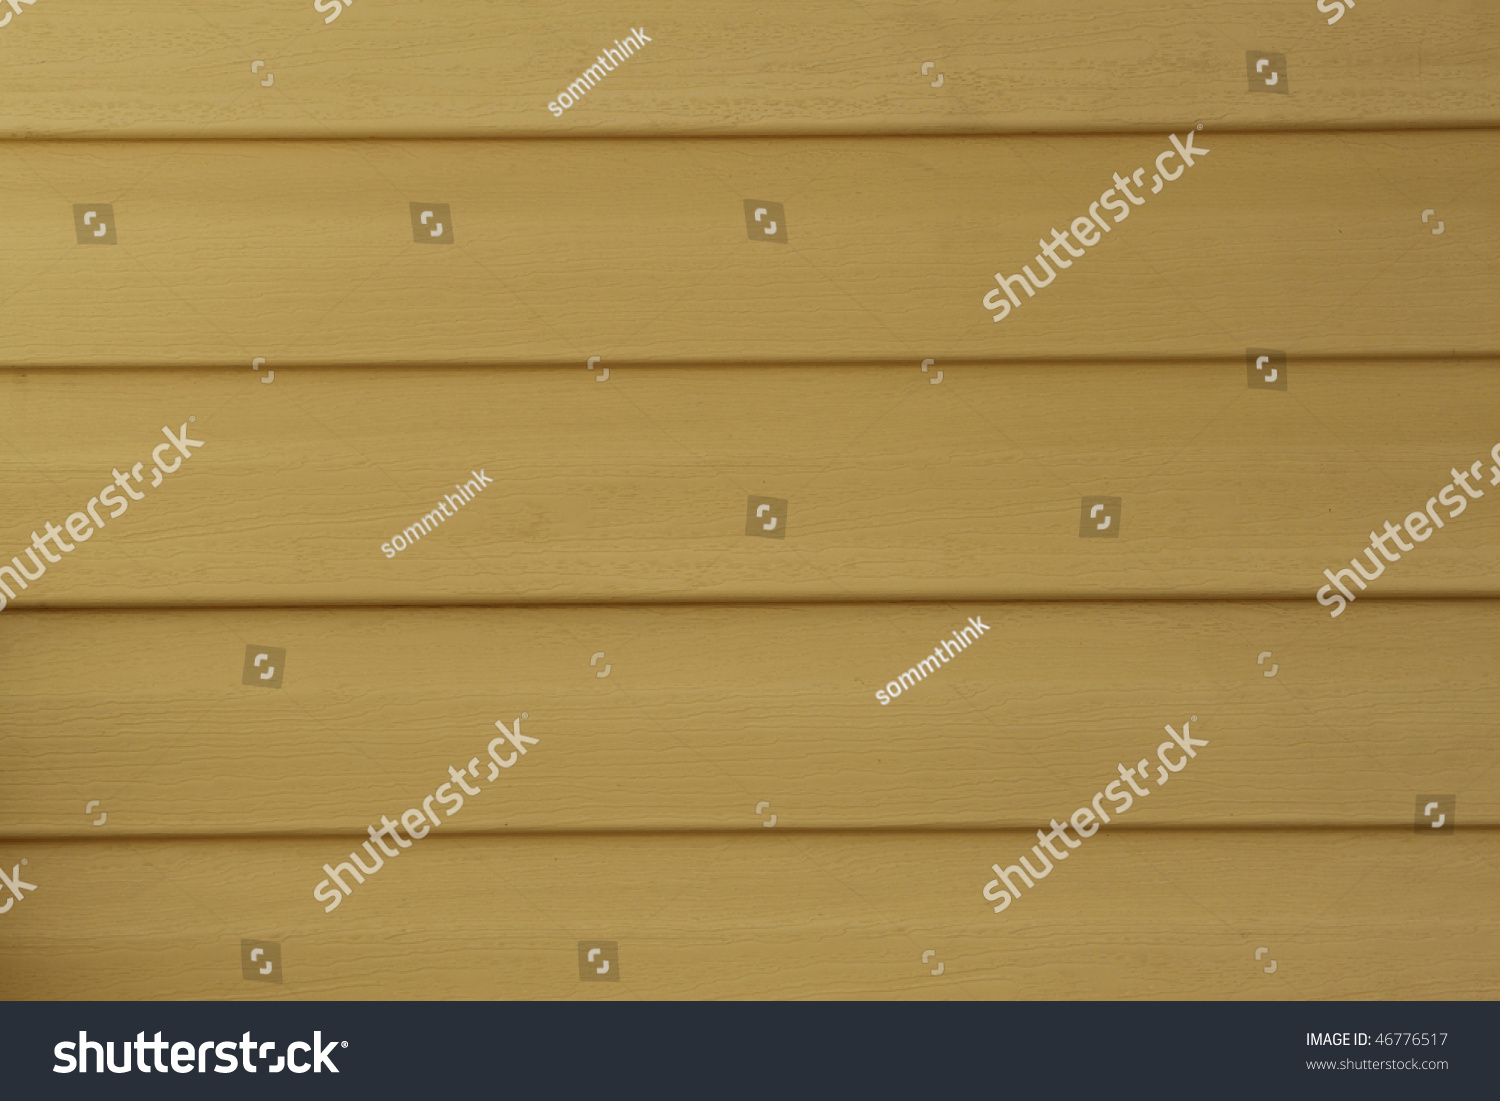 yellow vinyl siding on a house good for background stock photo 46776517 shutterstock. Black Bedroom Furniture Sets. Home Design Ideas